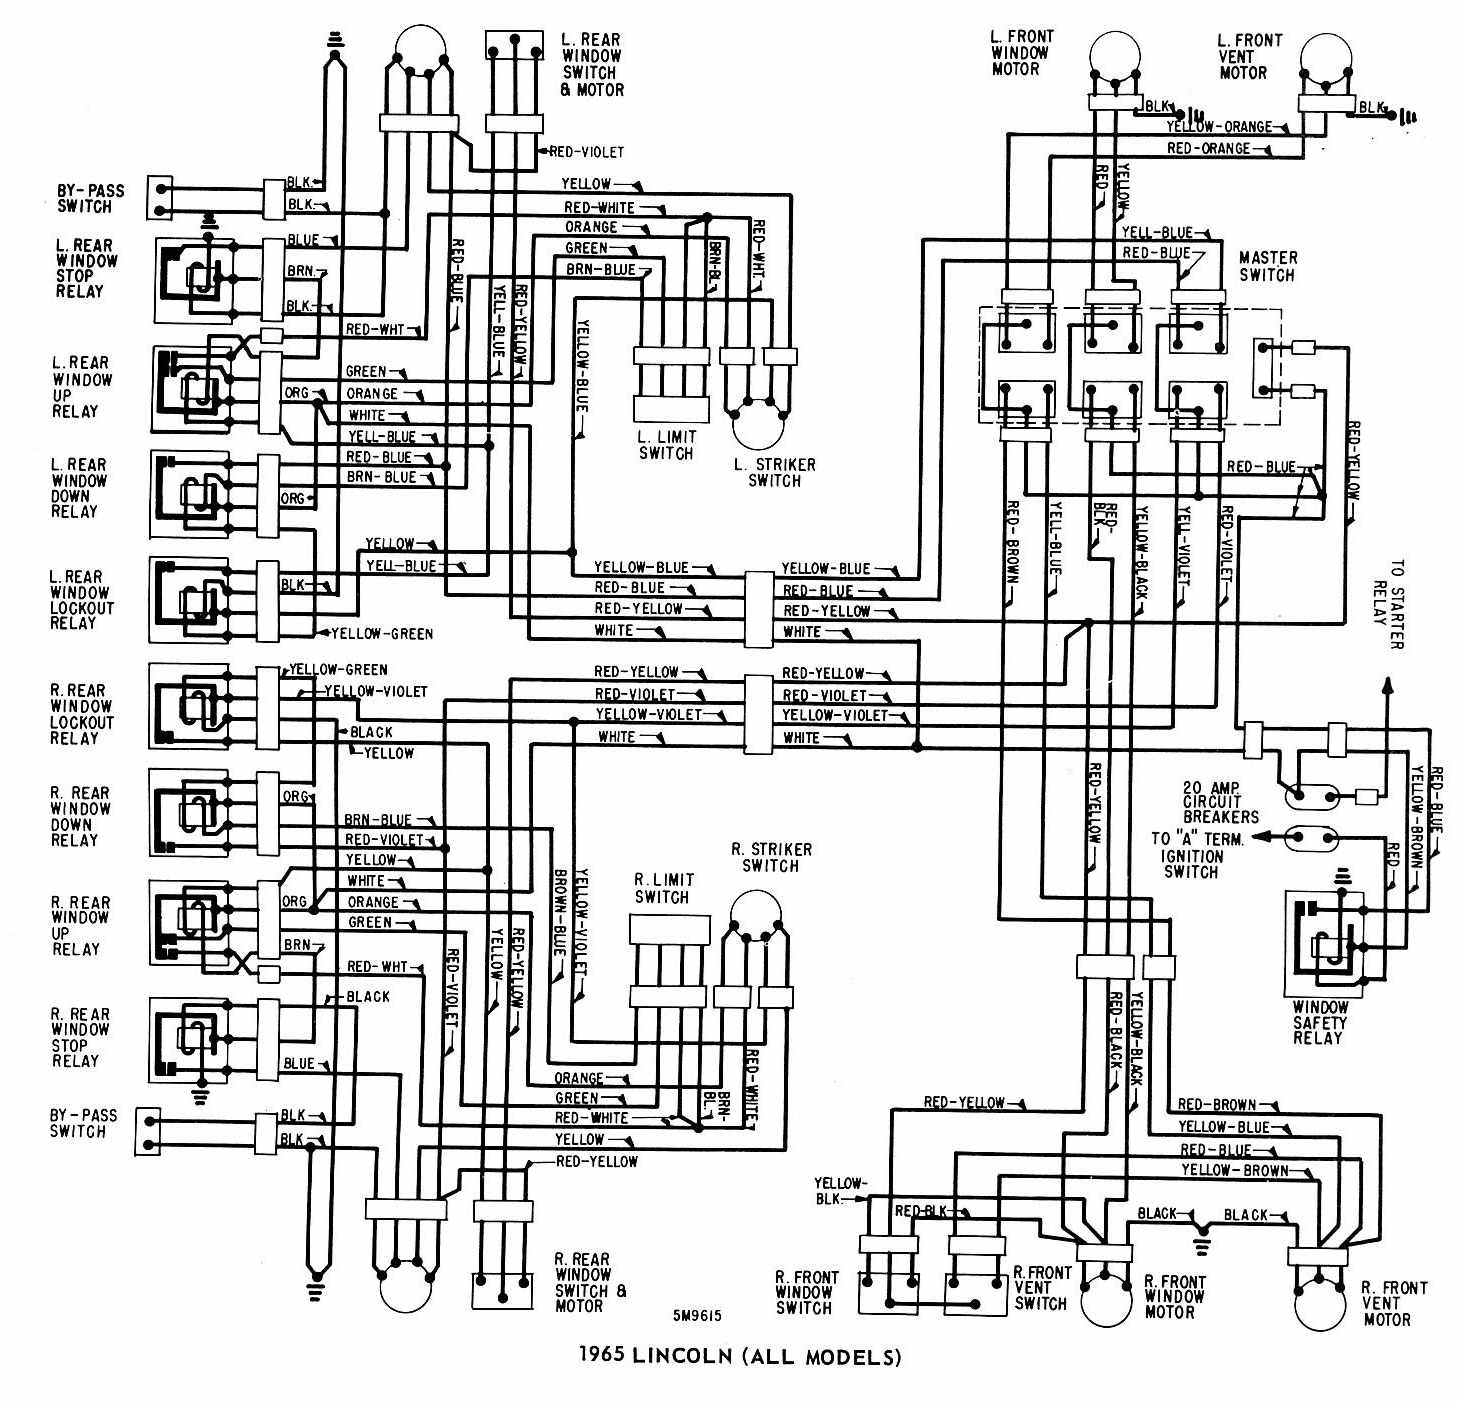 Lincoln+(All+Models)+1965+Windows+Wiring+Diagram lincoln wiring diagrams 1949 lincoln wiring diagram \u2022 free wiring lincoln foot pedal wiring diagram at edmiracle.co